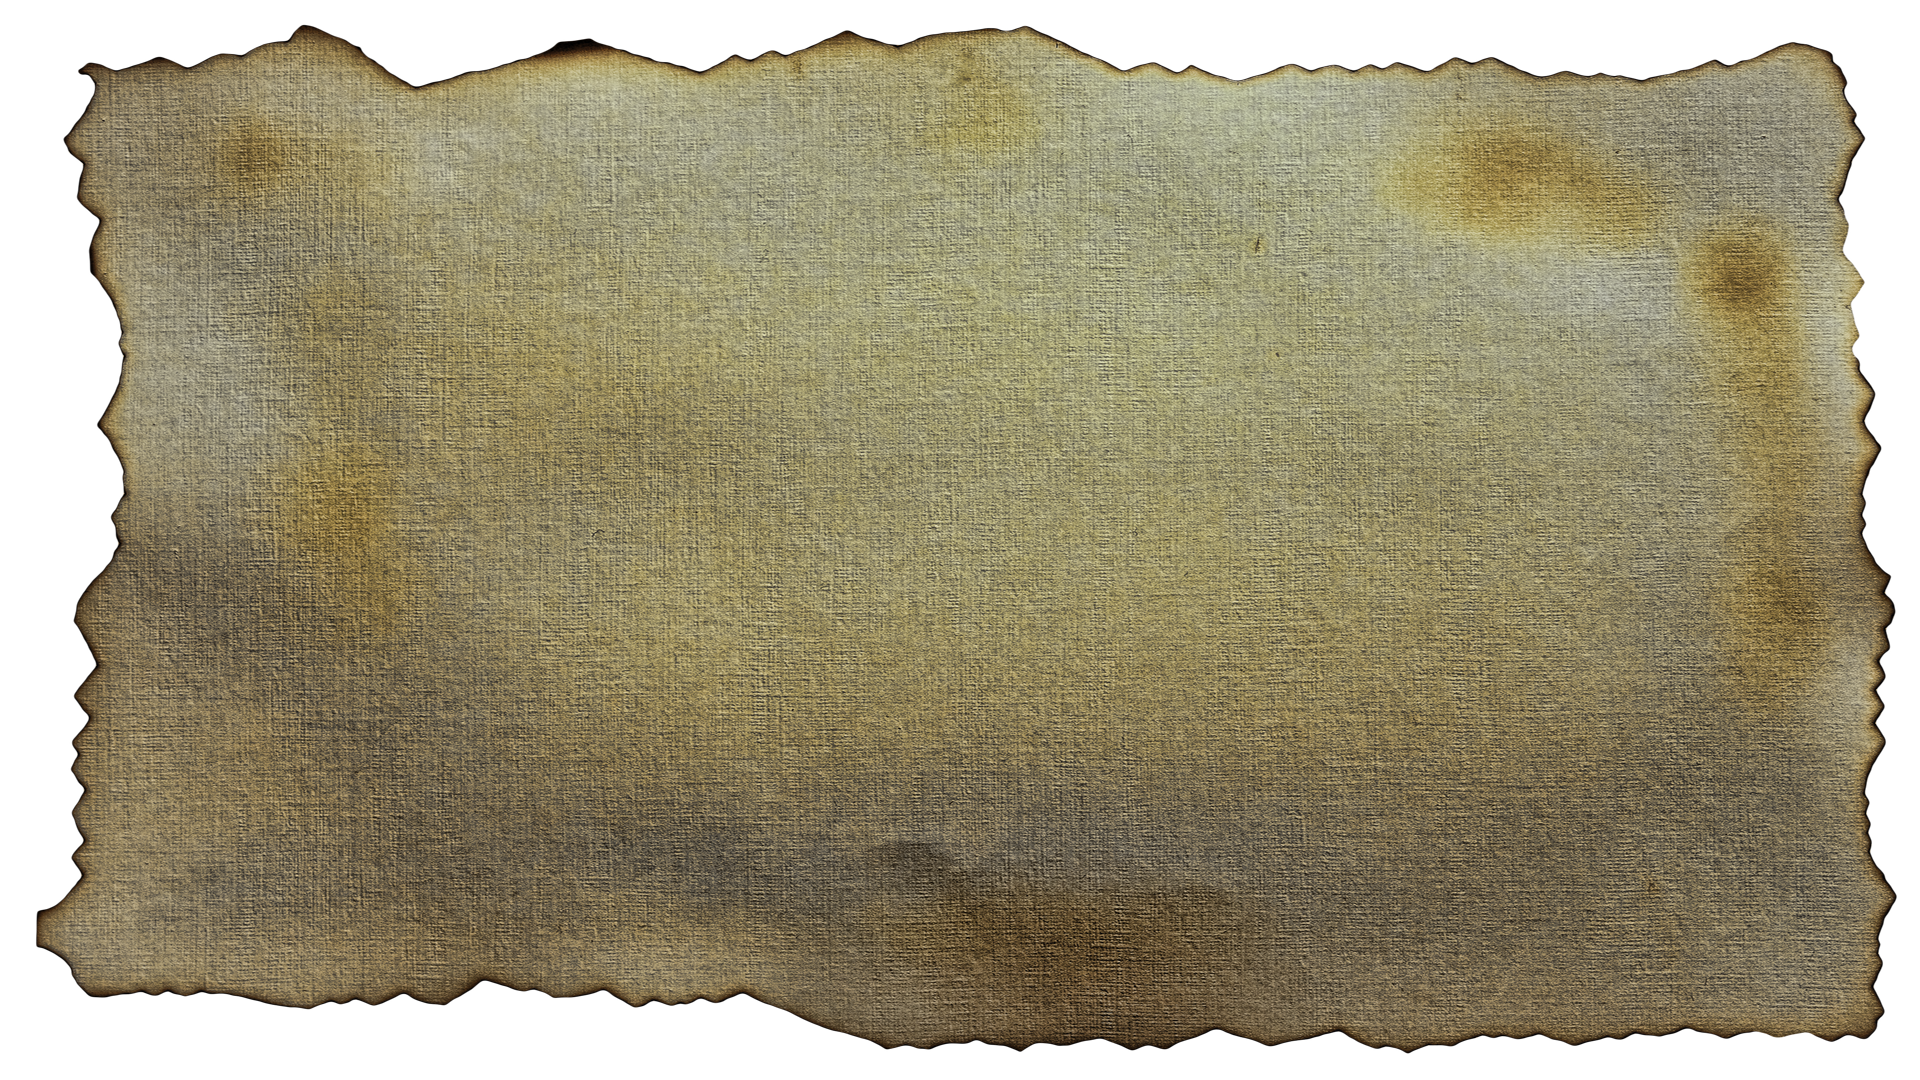 Burnt paper background png. Old